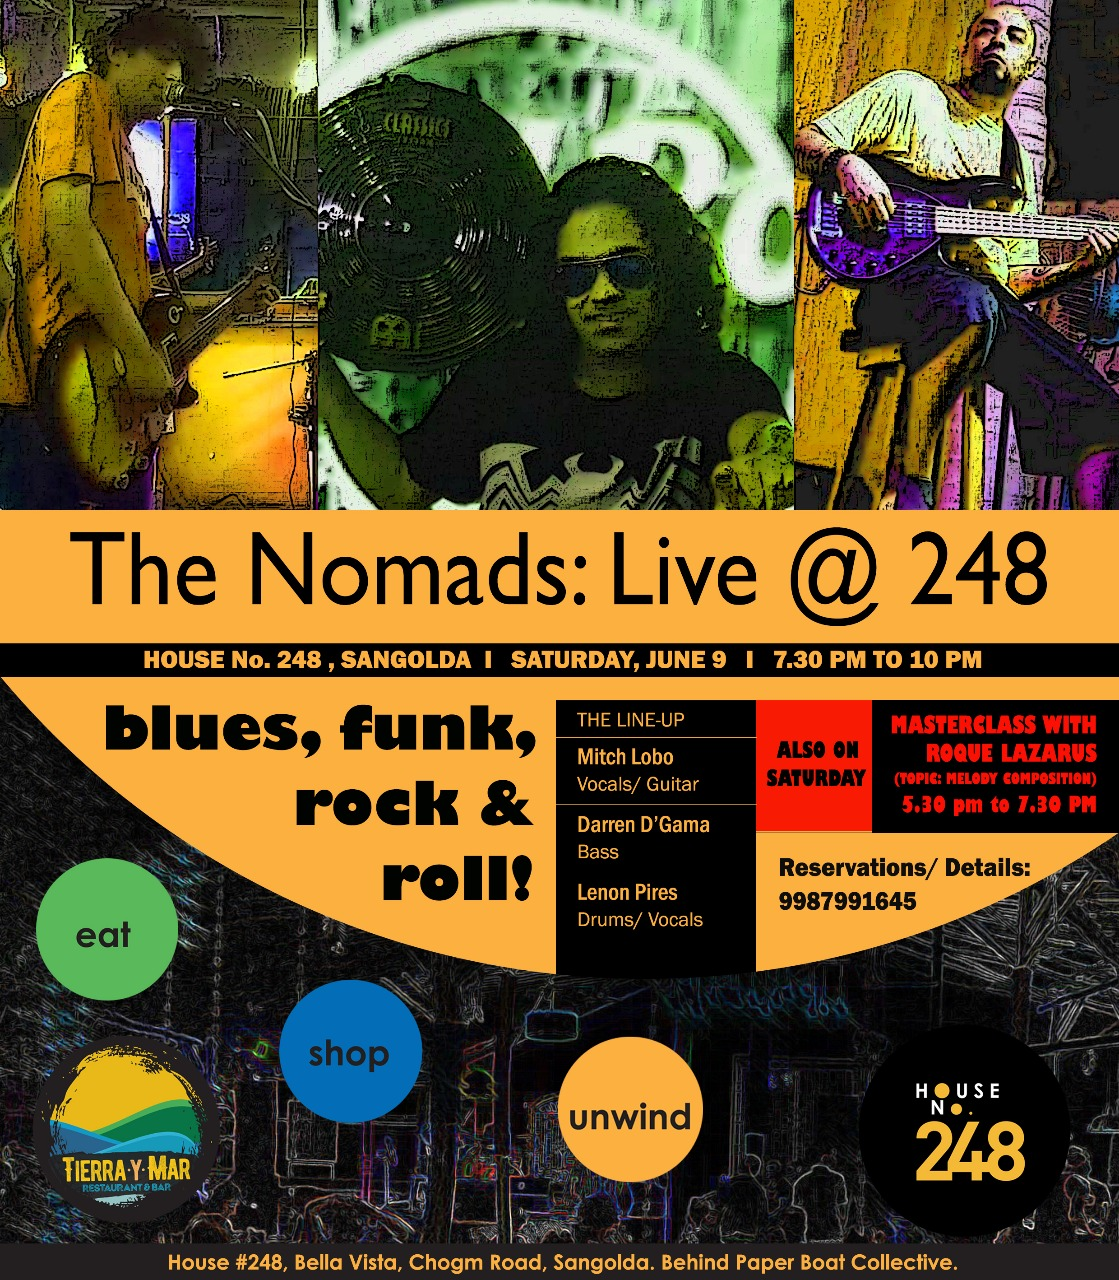 The Nomads: Live @248